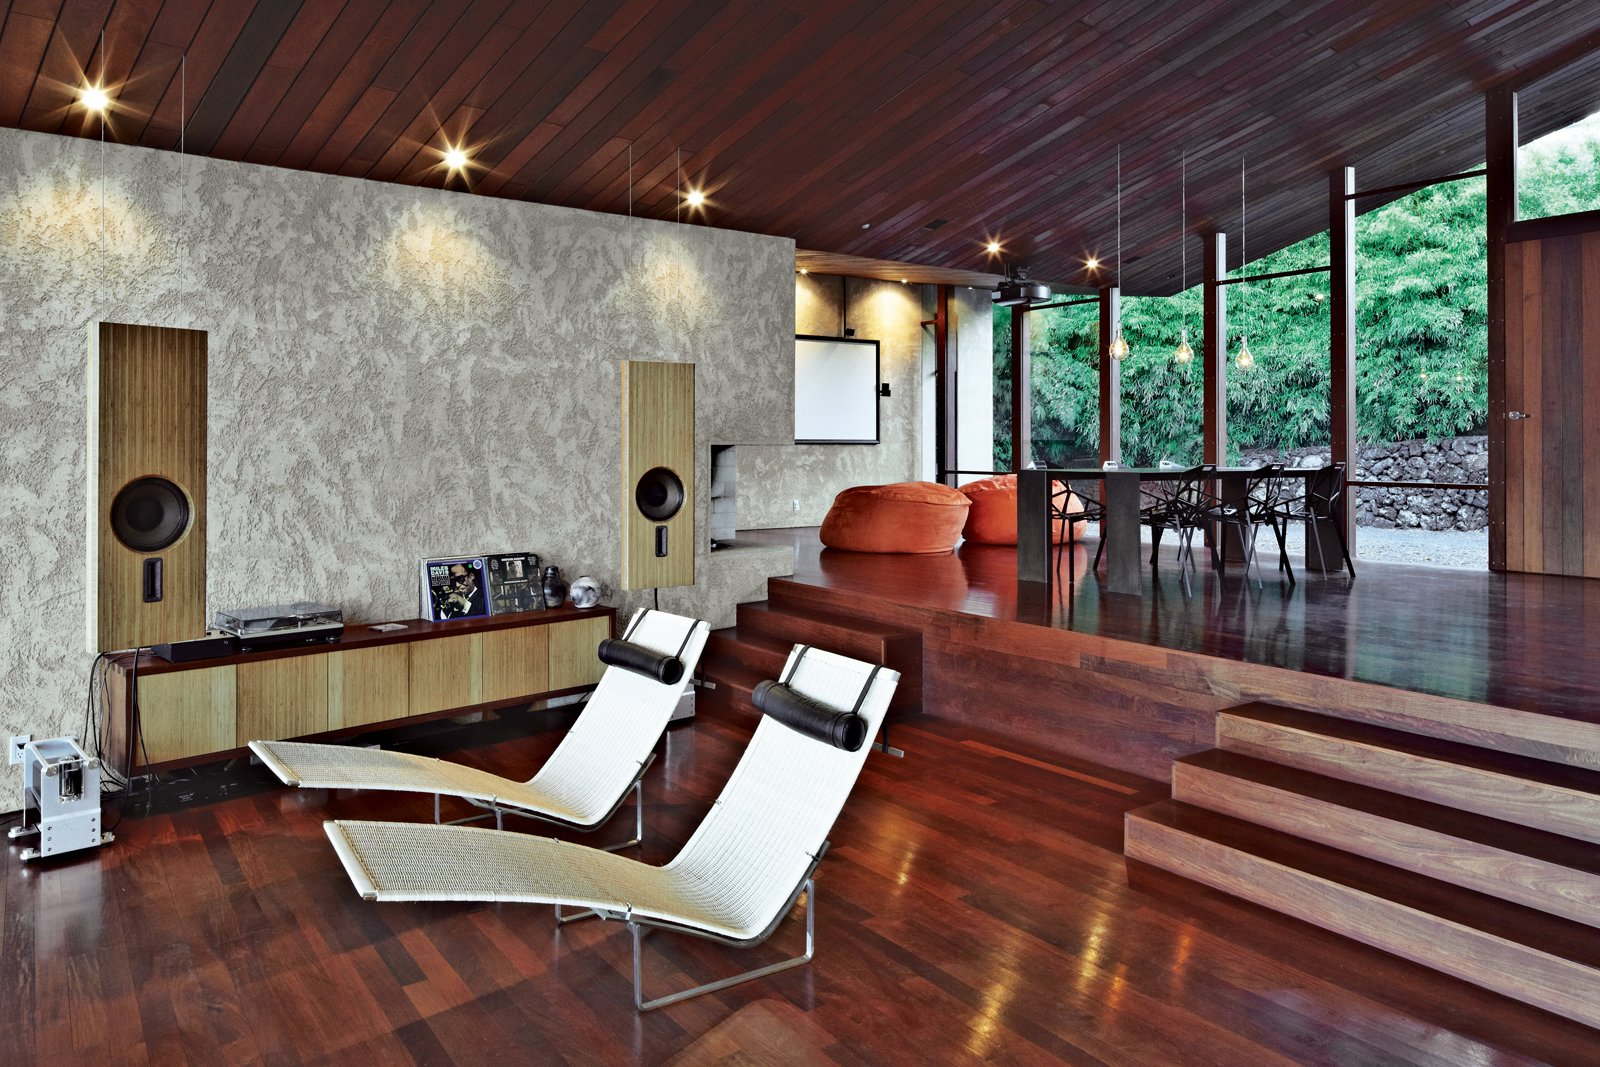 Dekleva Gregorič Arhitekti, along with resident Robert Stroj, designed most of the furnishings in the house, including the speakers, wall cabinet, and dining table. The beanbag pouffes are by Slacker Sack and the Chair-One dining chairs are by Konstantin Grcic for Magis. The stucco used on the walls was custom made from a mixture of white concrete, coral sand, dune sand, and lime. Tagged: Living Room, Chair, Recliner, Medium Hardwood Floor, and Ceiling Lighting.  Photo 3 of 10 in Clifftop House with Angled Roof in Maui